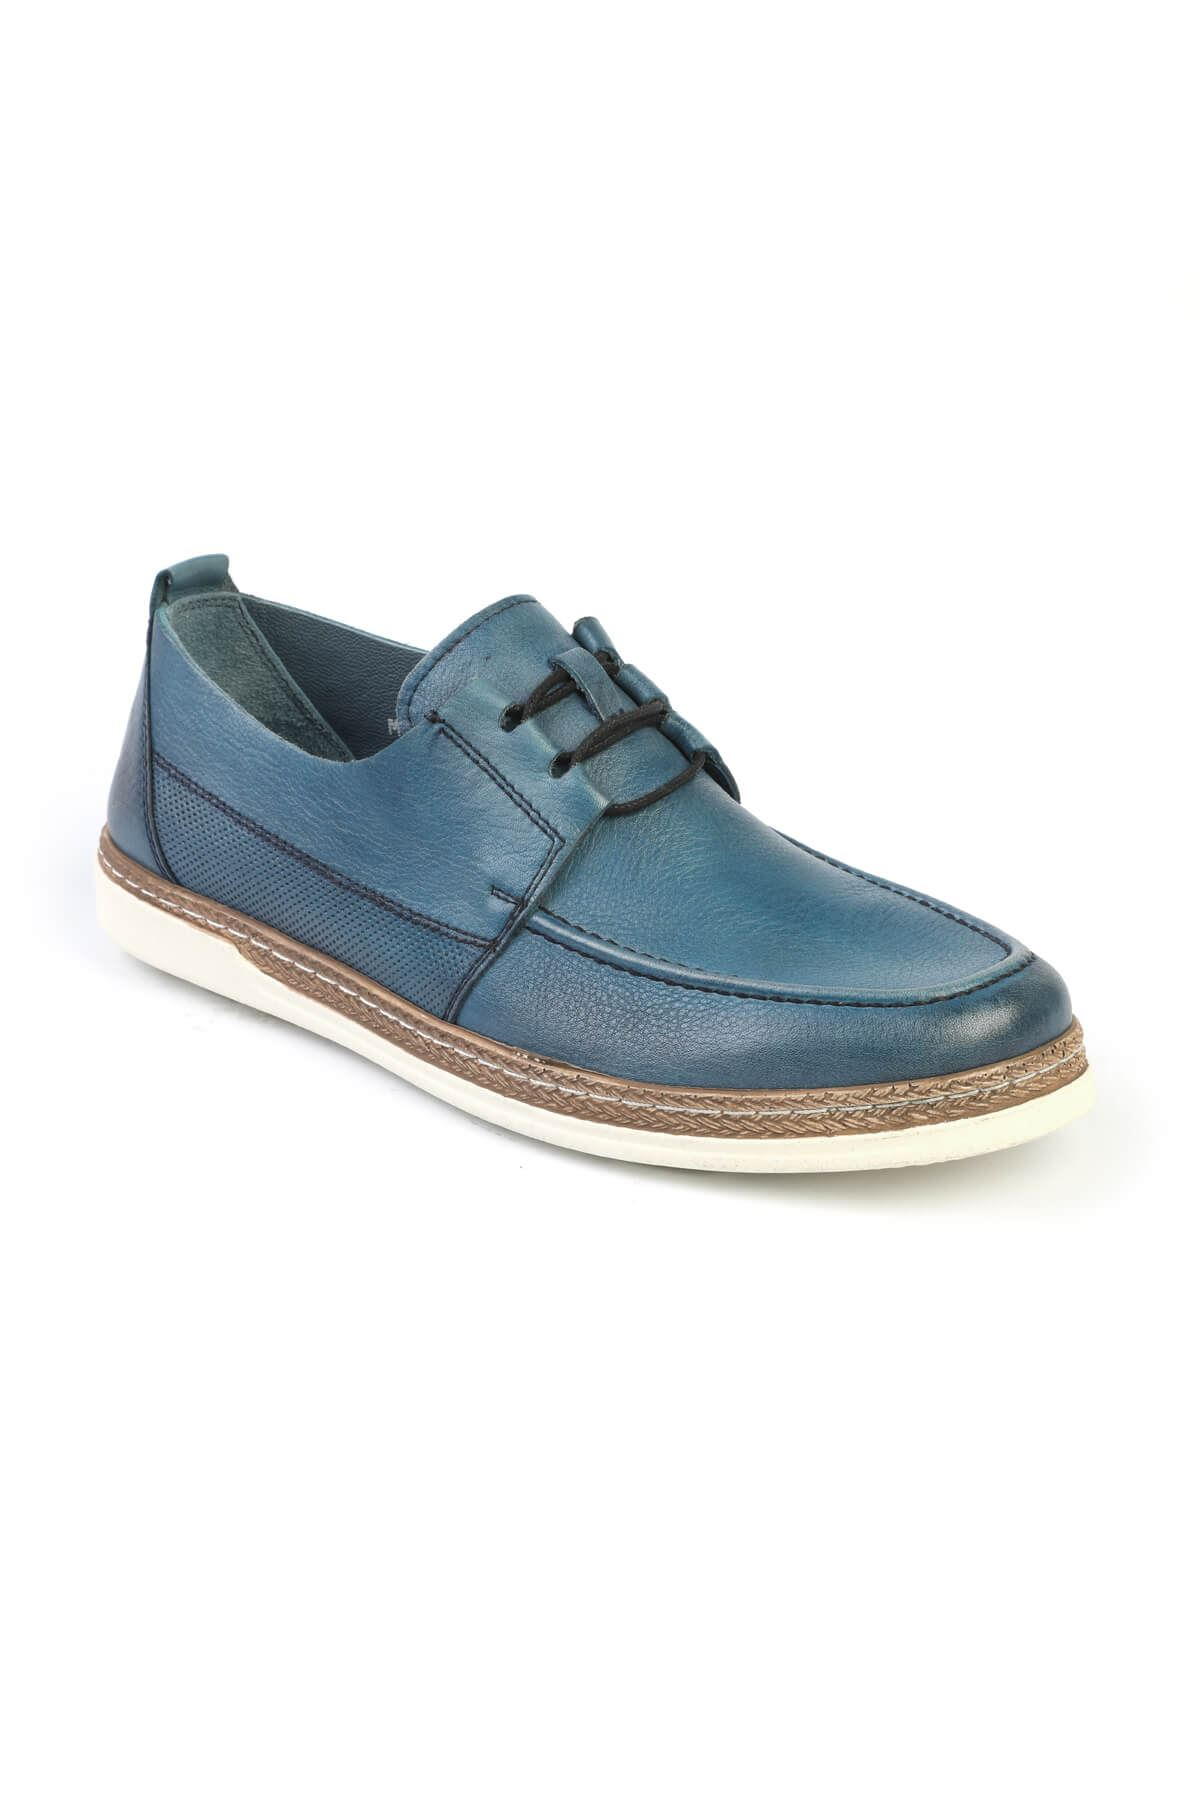 Libero C626 Blue Casual Shoes